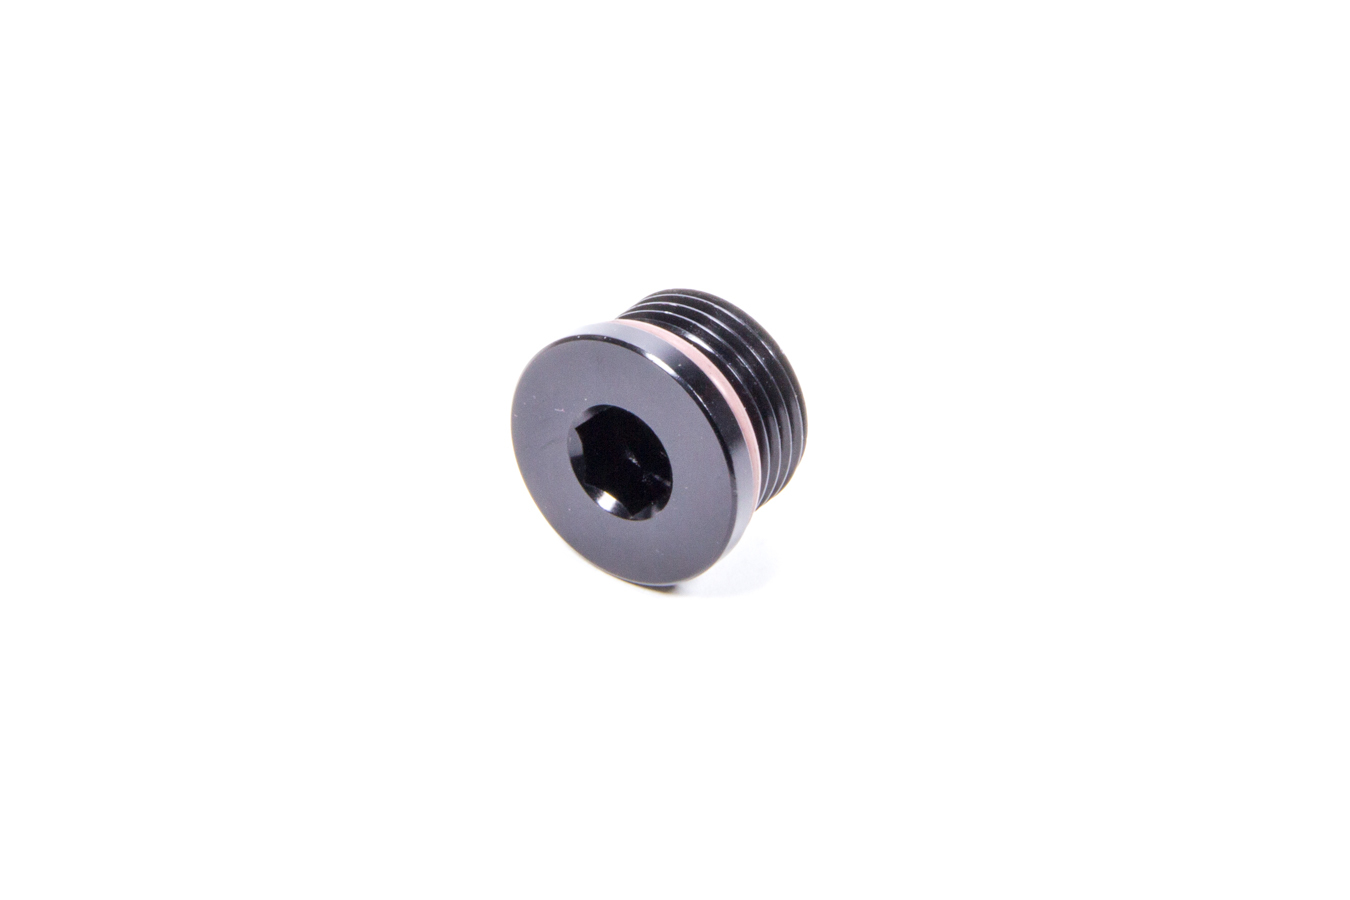 XRP IHP010 Fitting, Plug, 10 AN Male O-Ring, Allen Head, Black Anodize, Each